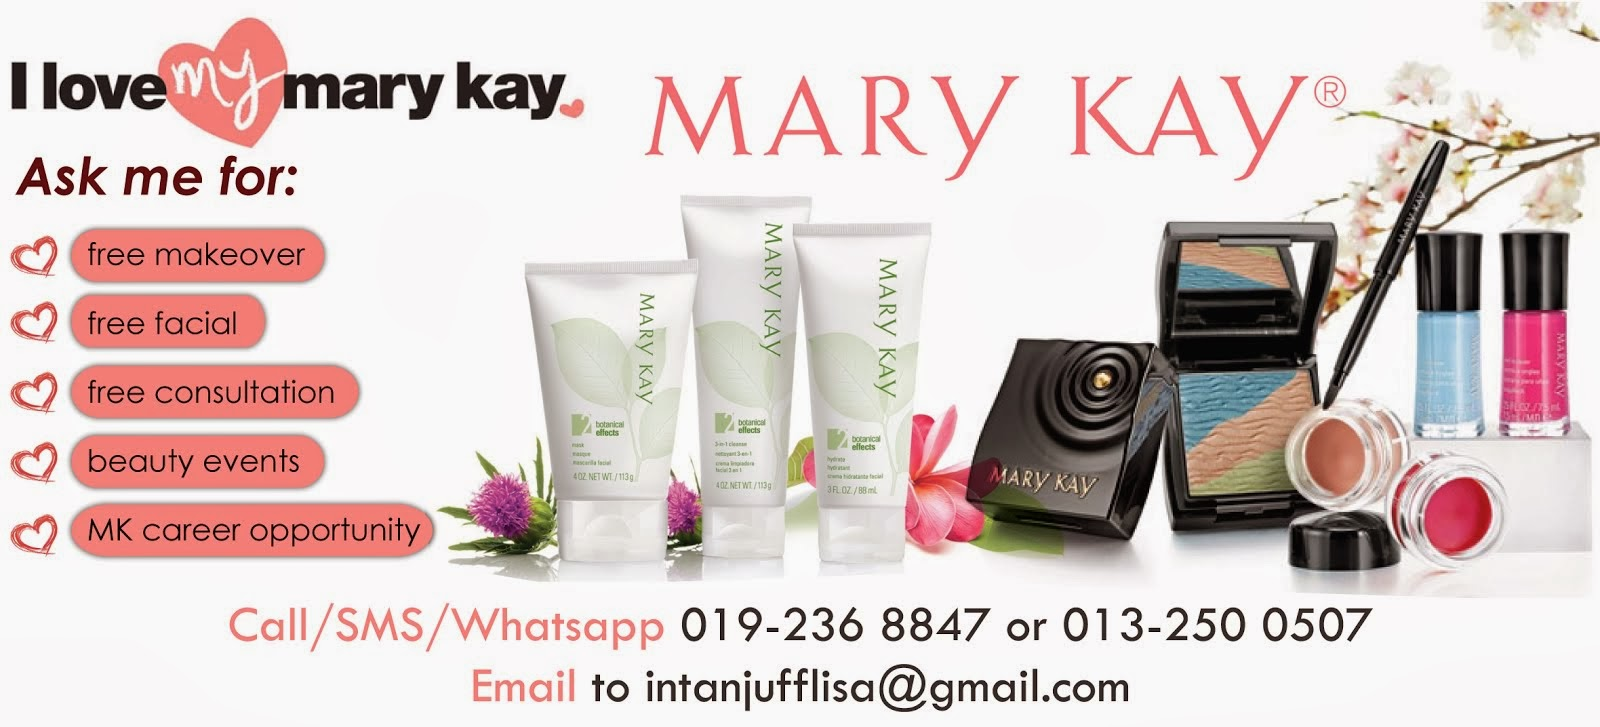 I Love My Mary Kay